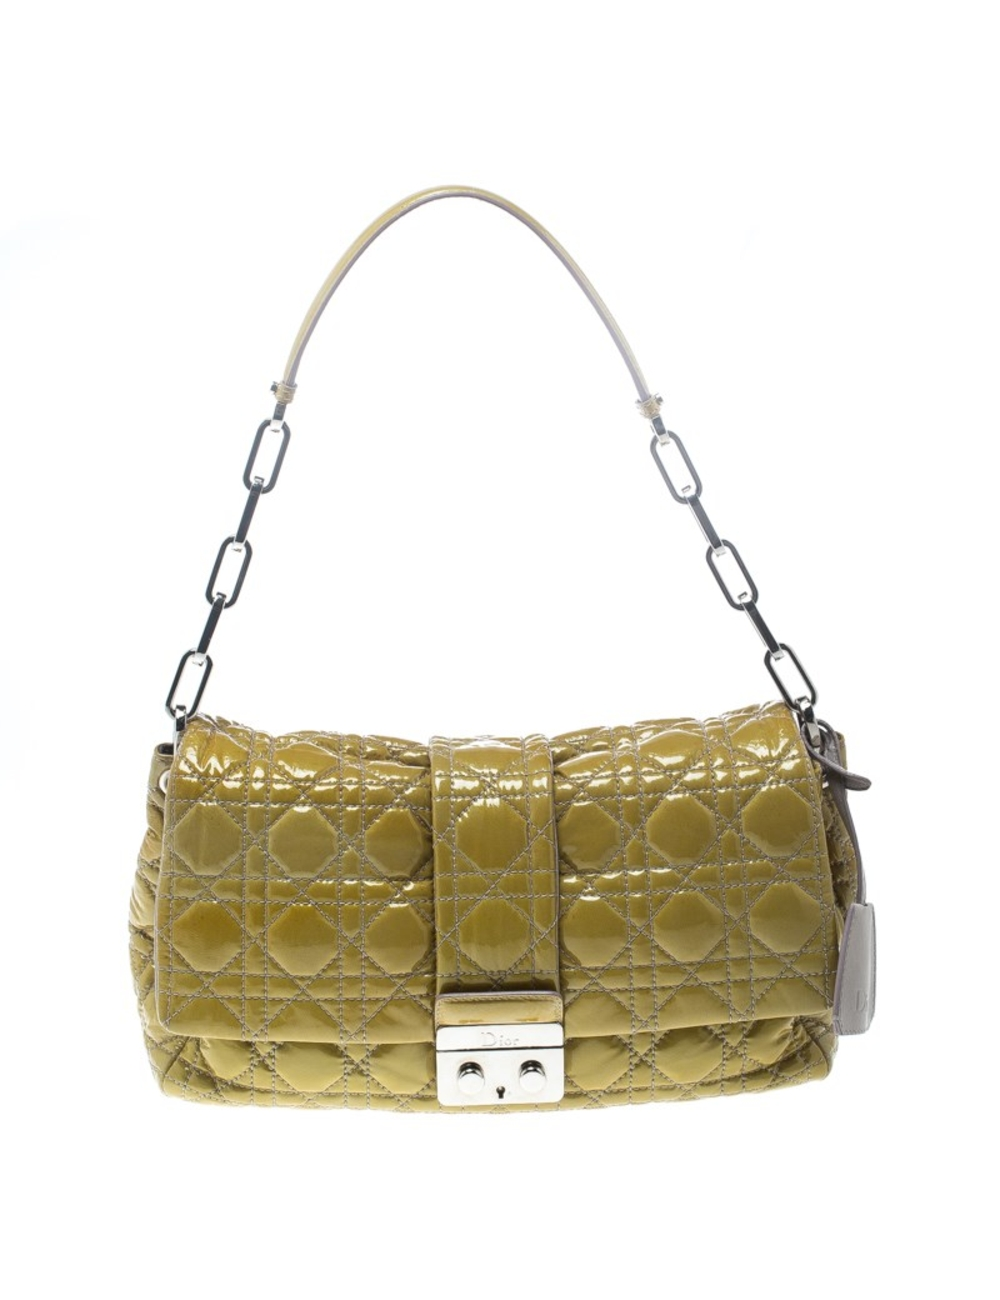 This Dior flap bag was named after New Look which was actually coined by Christian Dior himself. Daz